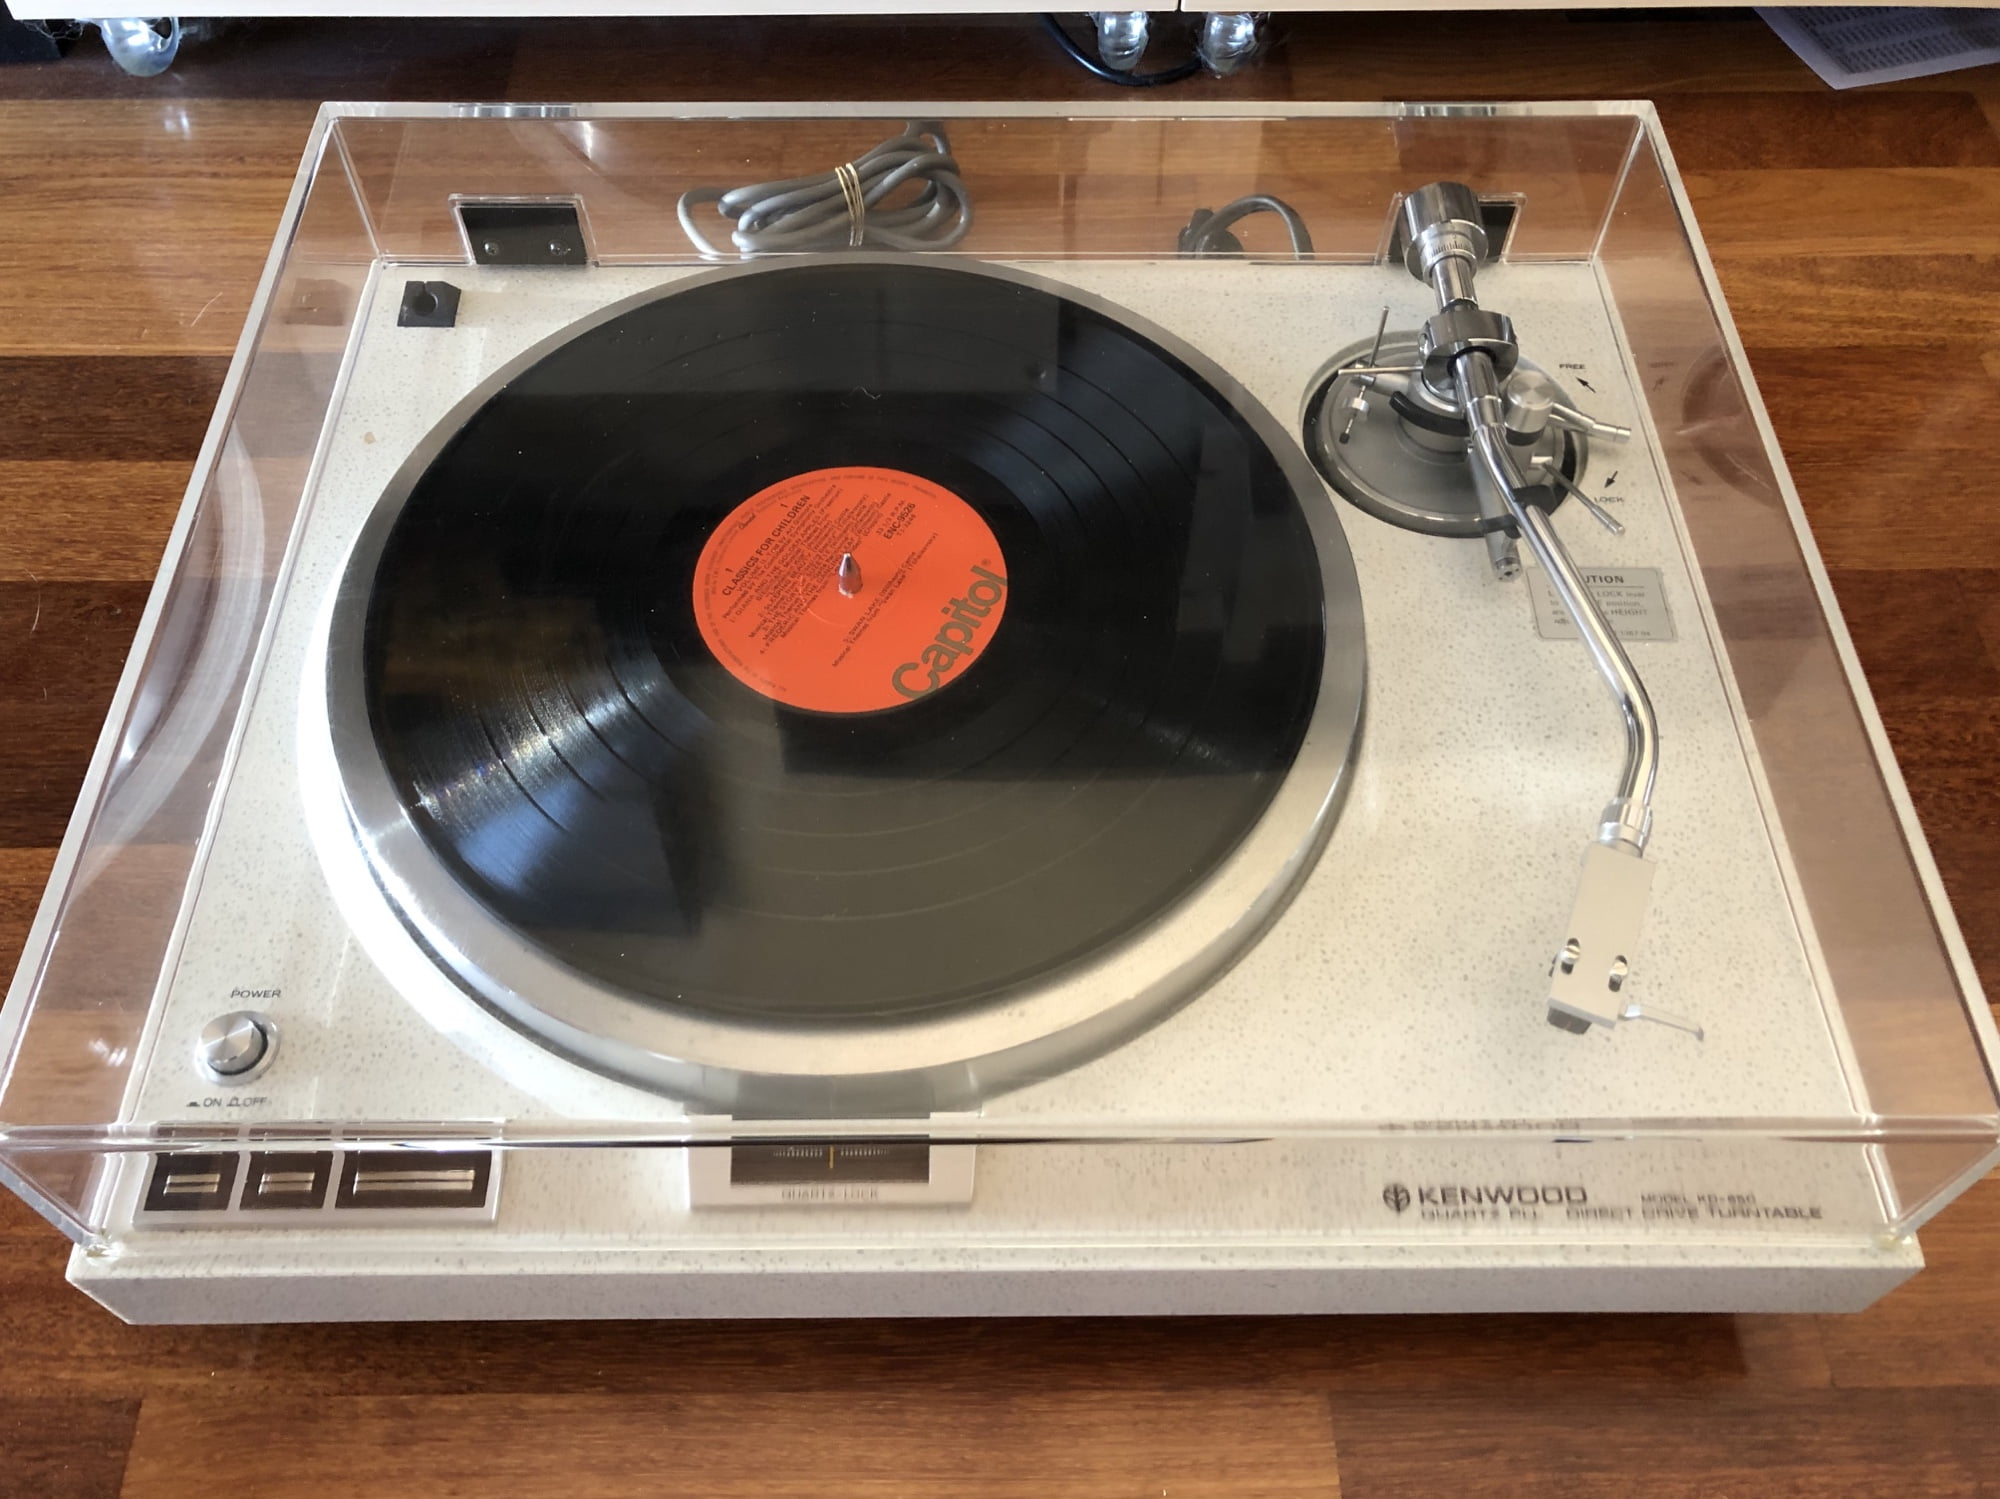 Kenwood KD-650 Direct Drive Turntable